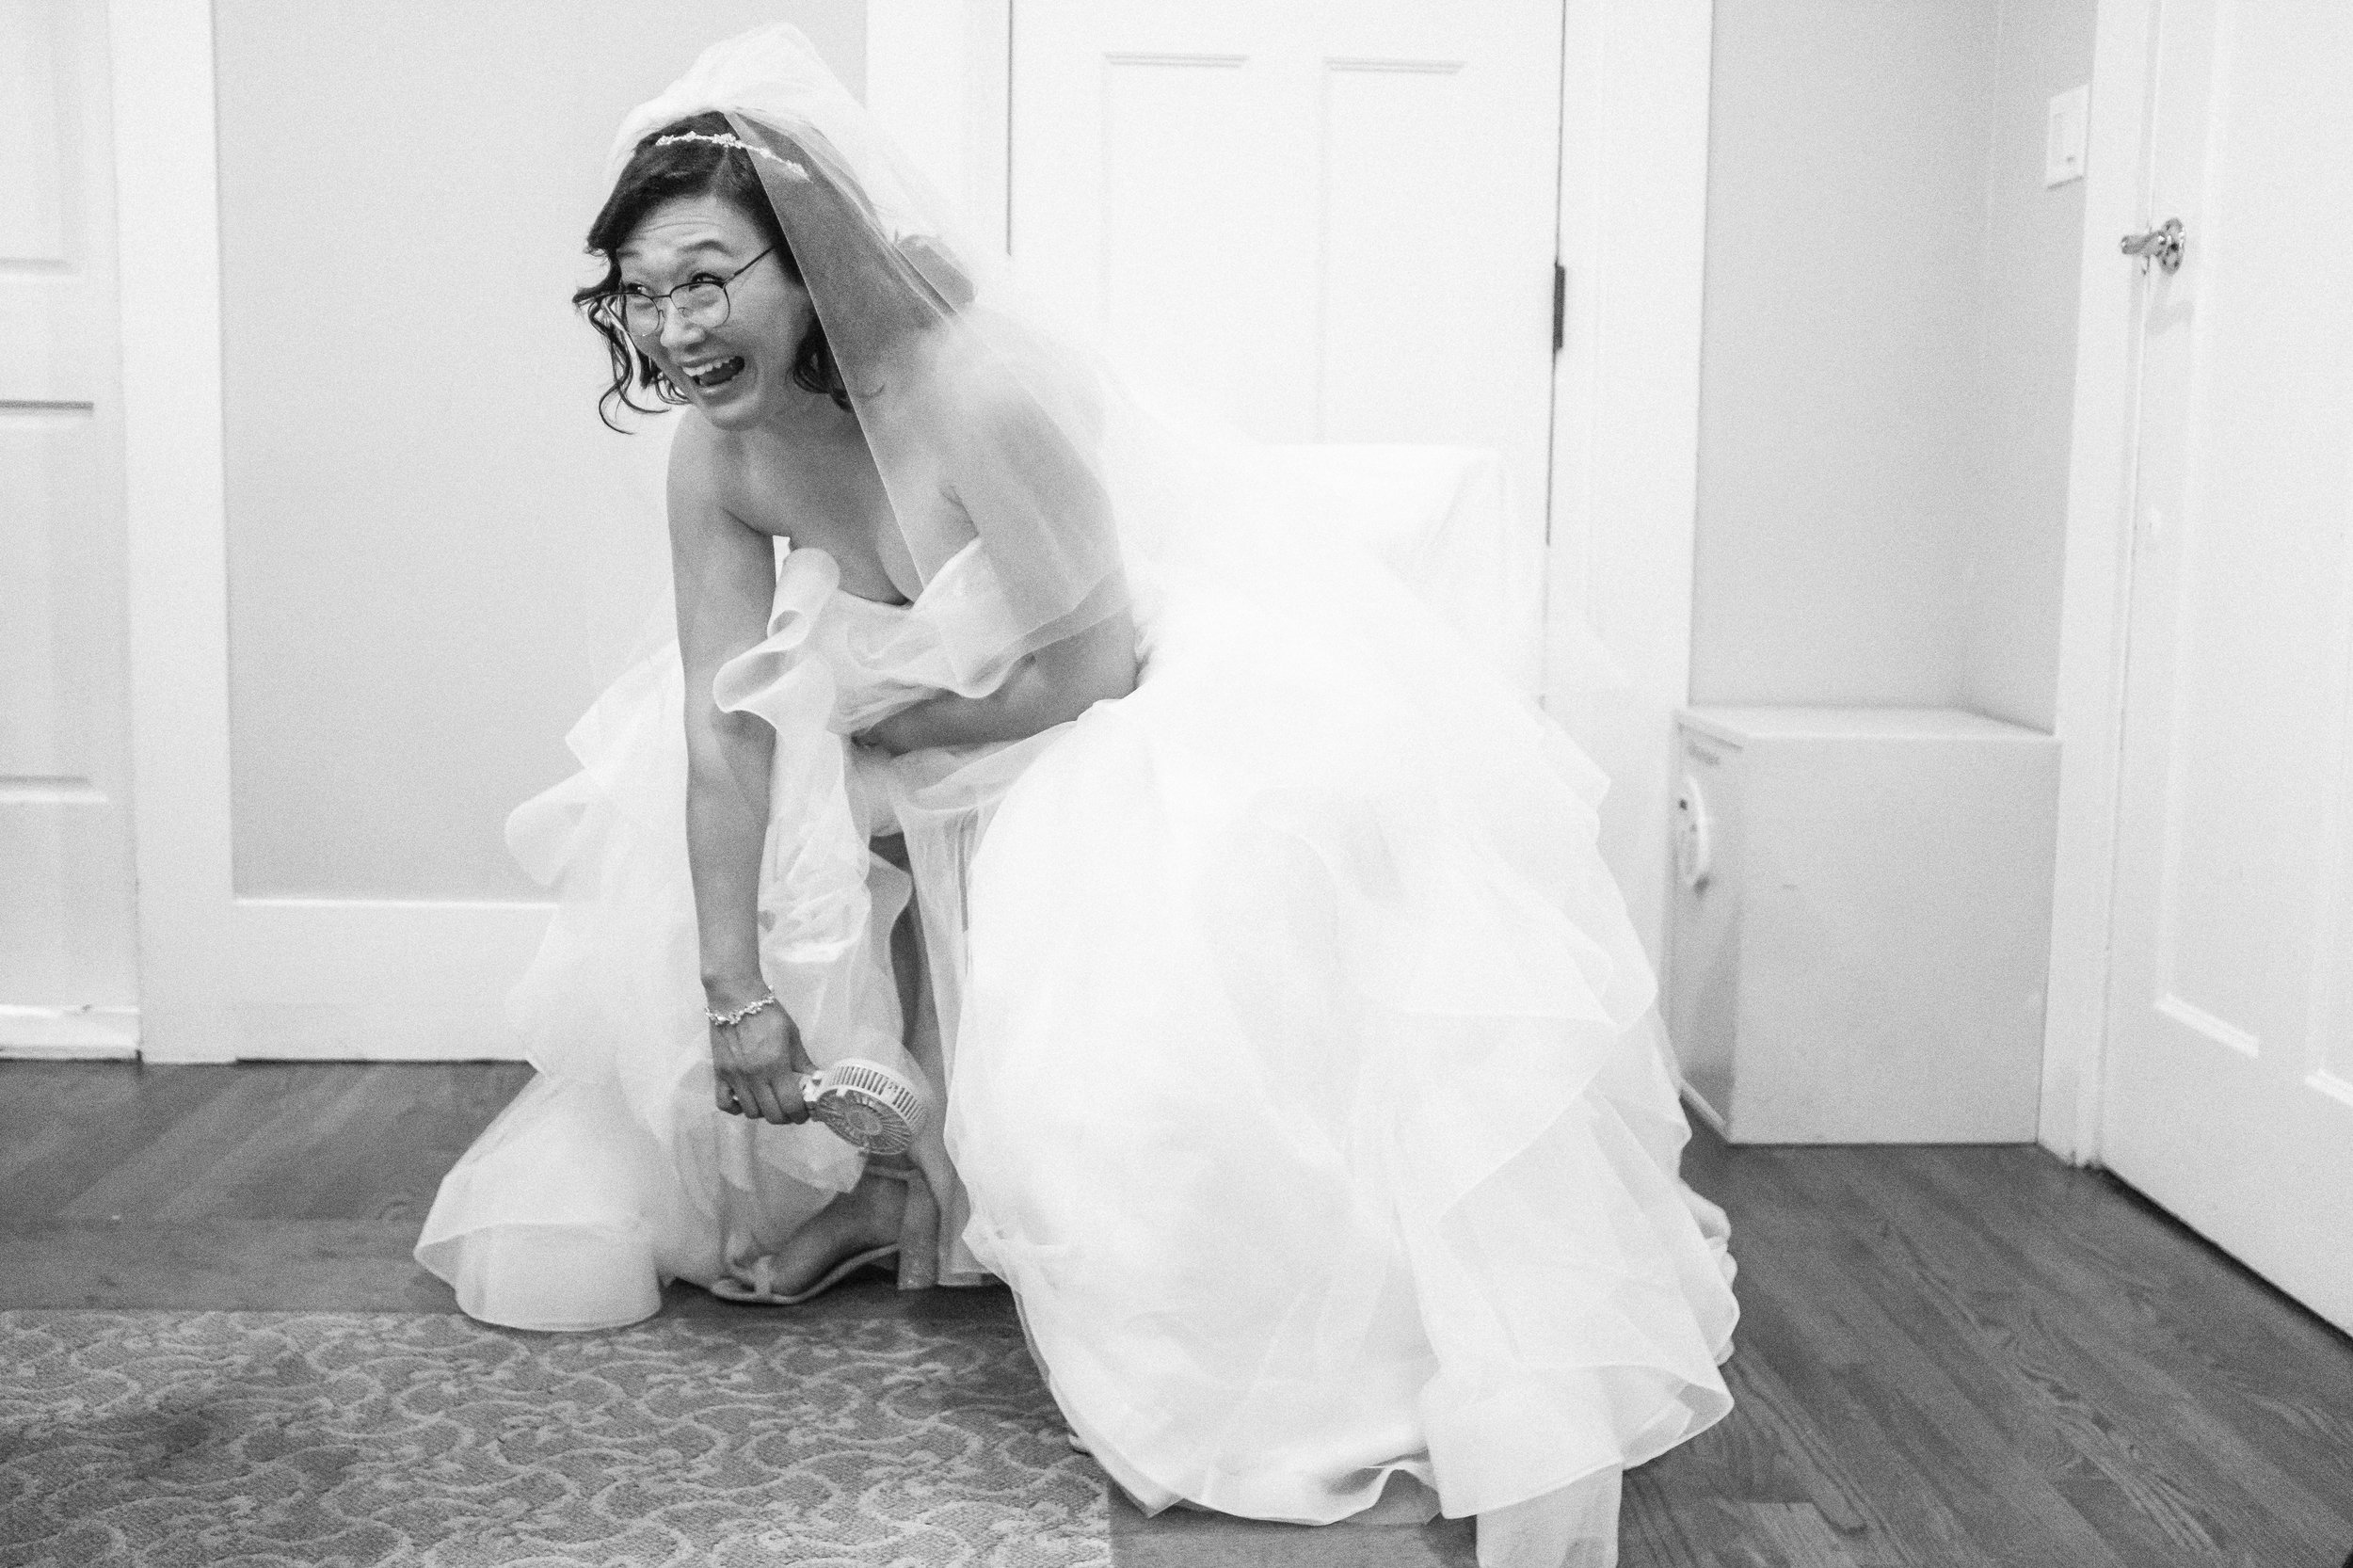 los angeles wedding photographer_candid_documentary0091.jpg